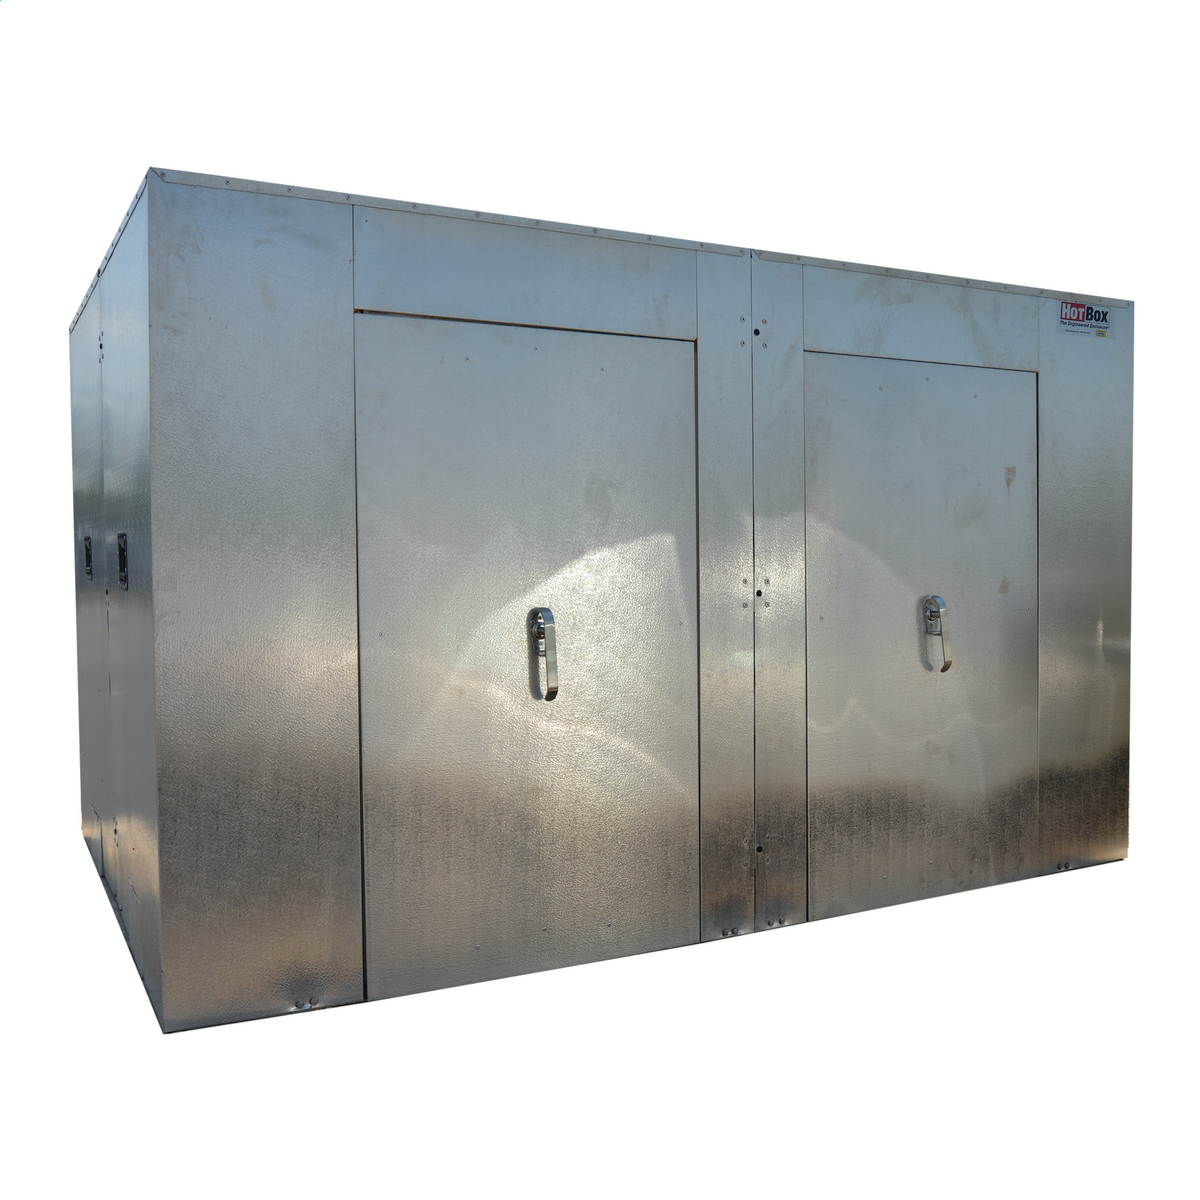 Heated, Insulated Enclosure, Sectional, Hot Box, Aluminum | Brand ...